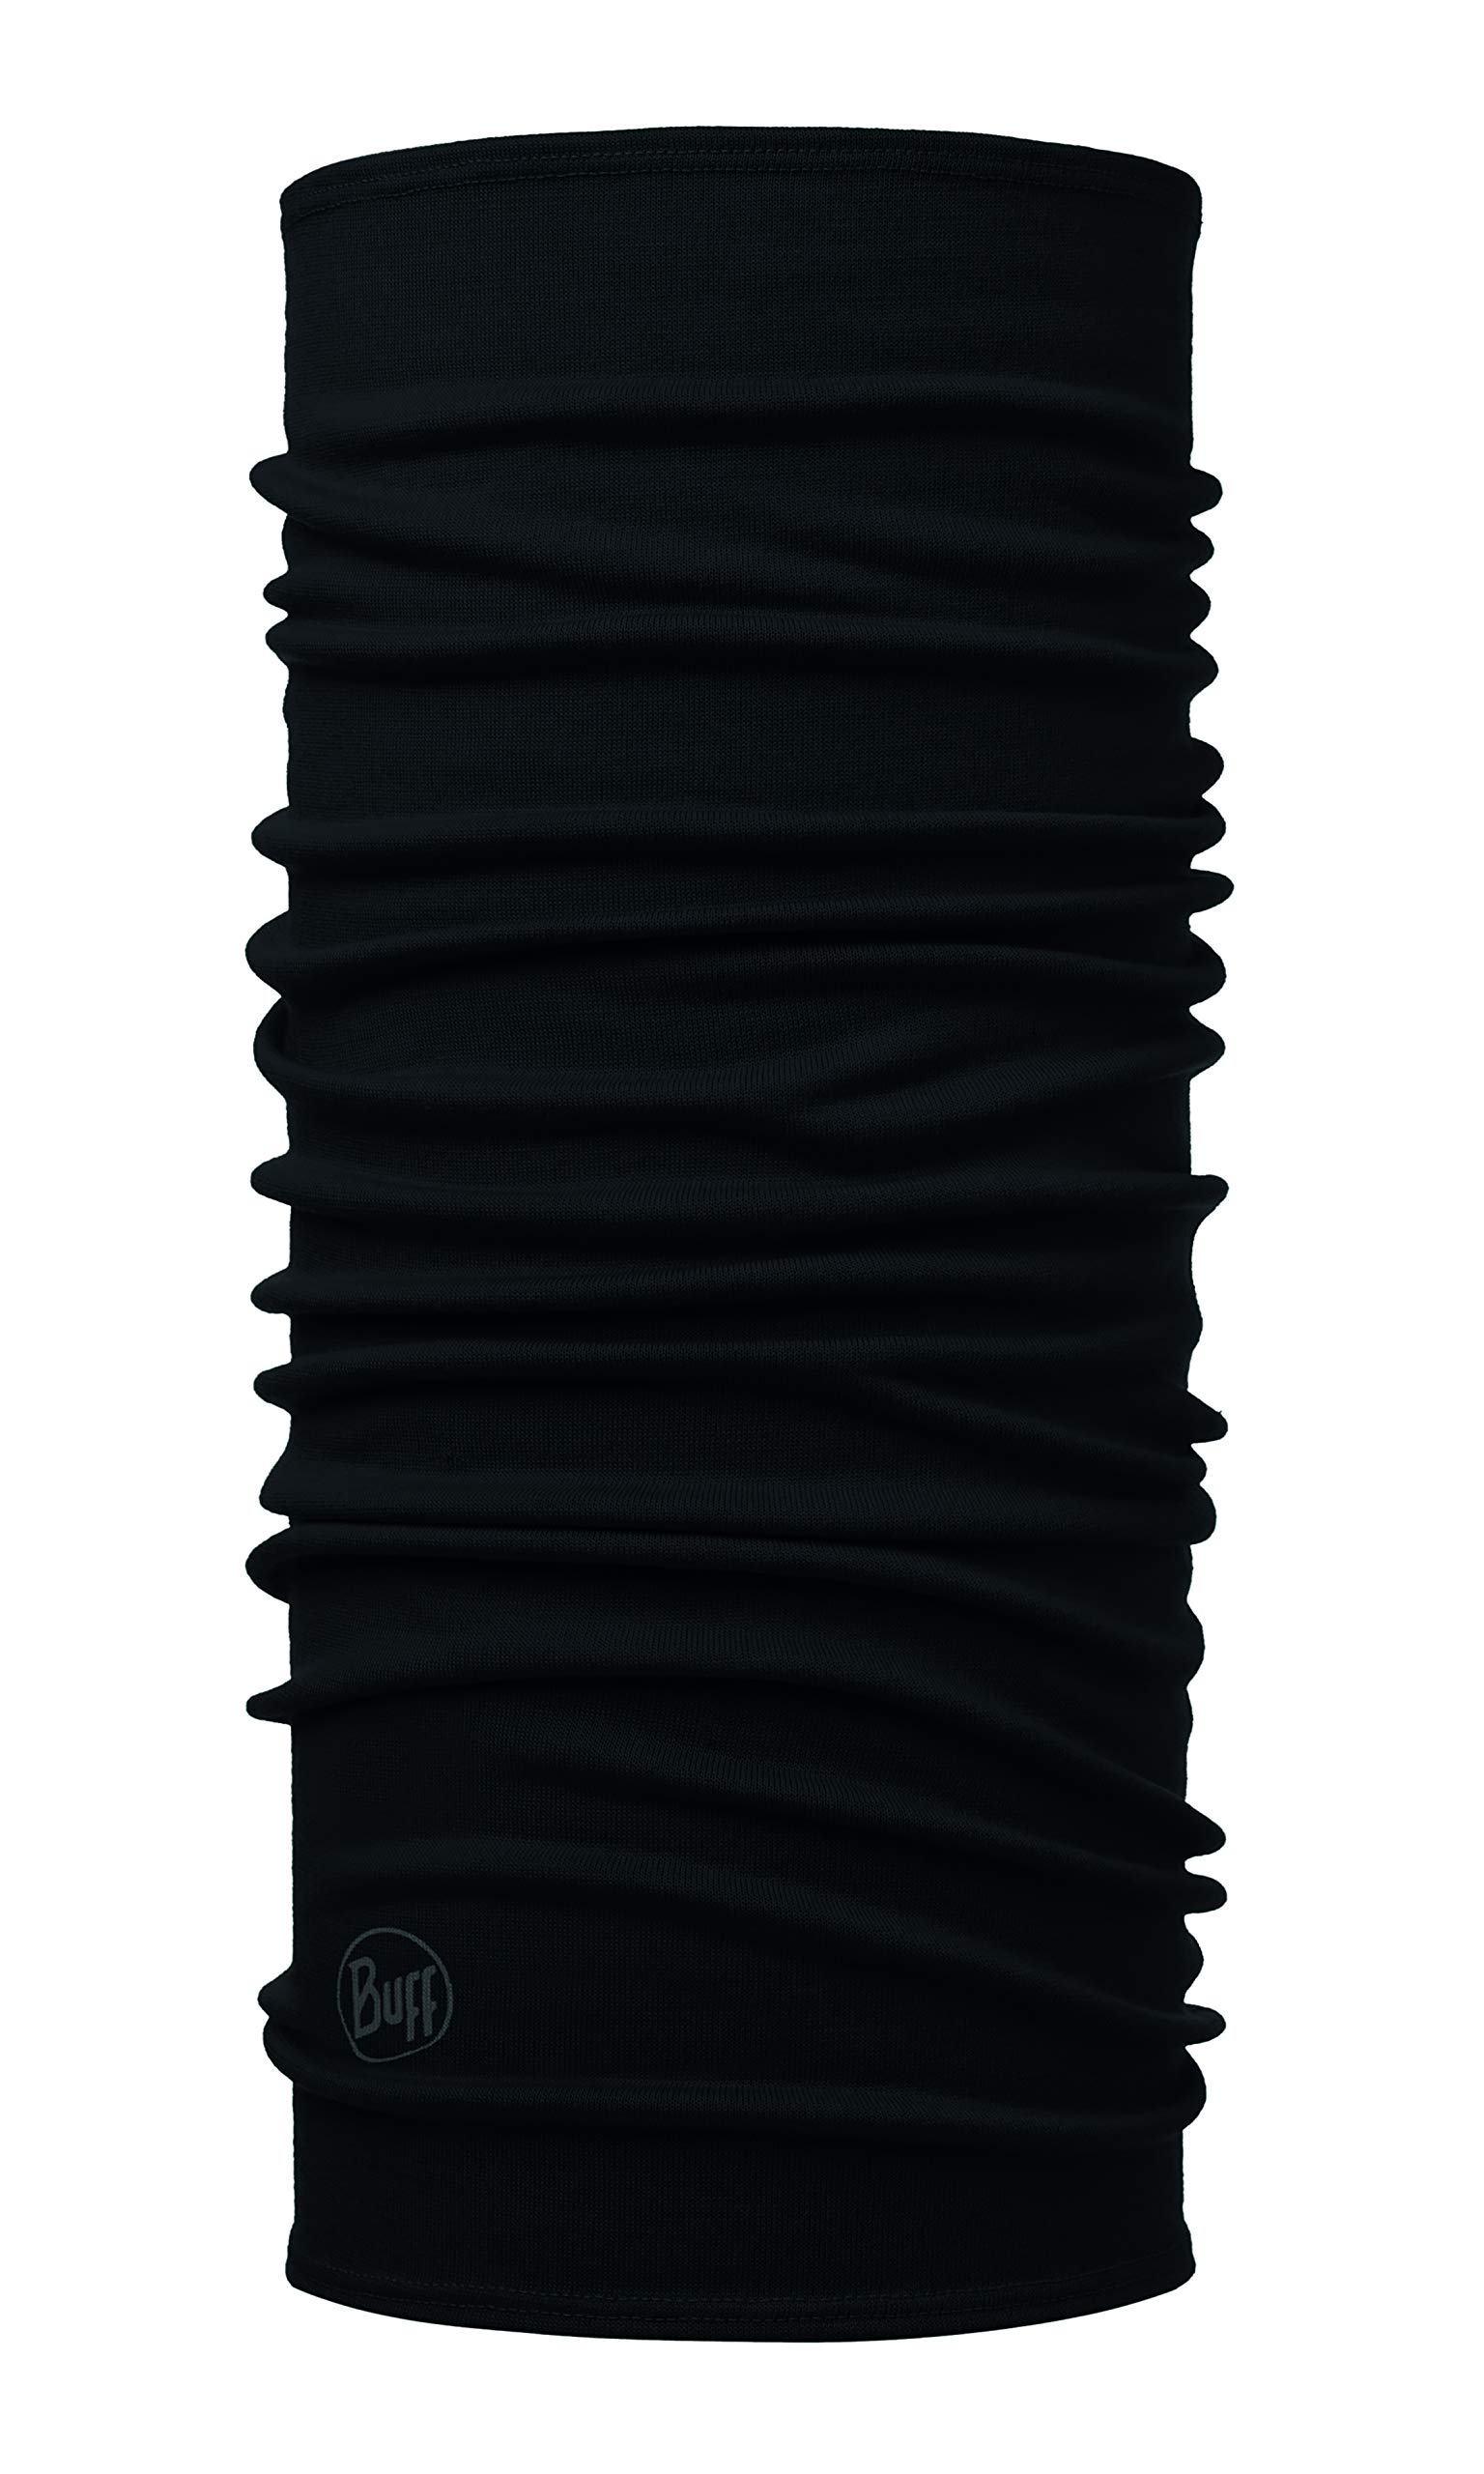 Buff Midweight Merino Wool Multifunktionstuch, Solid Black, one Size